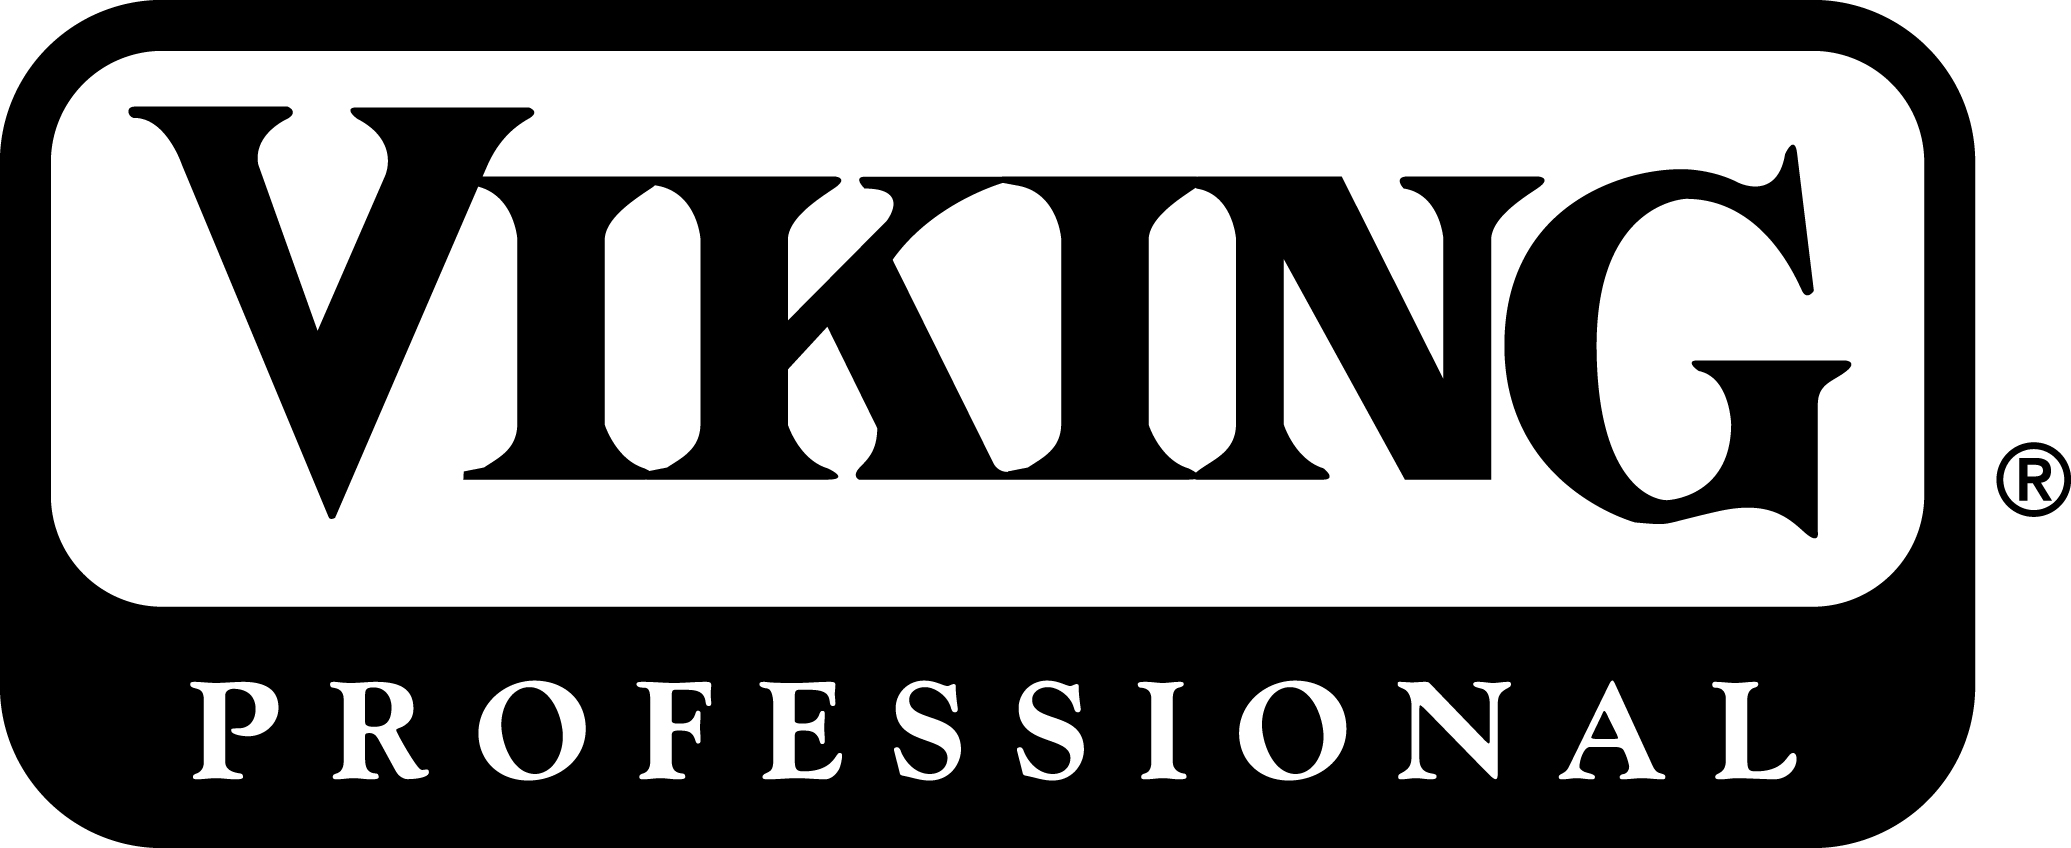 Viking Kitchen Oven Repair, Whirlpool Oven Repair